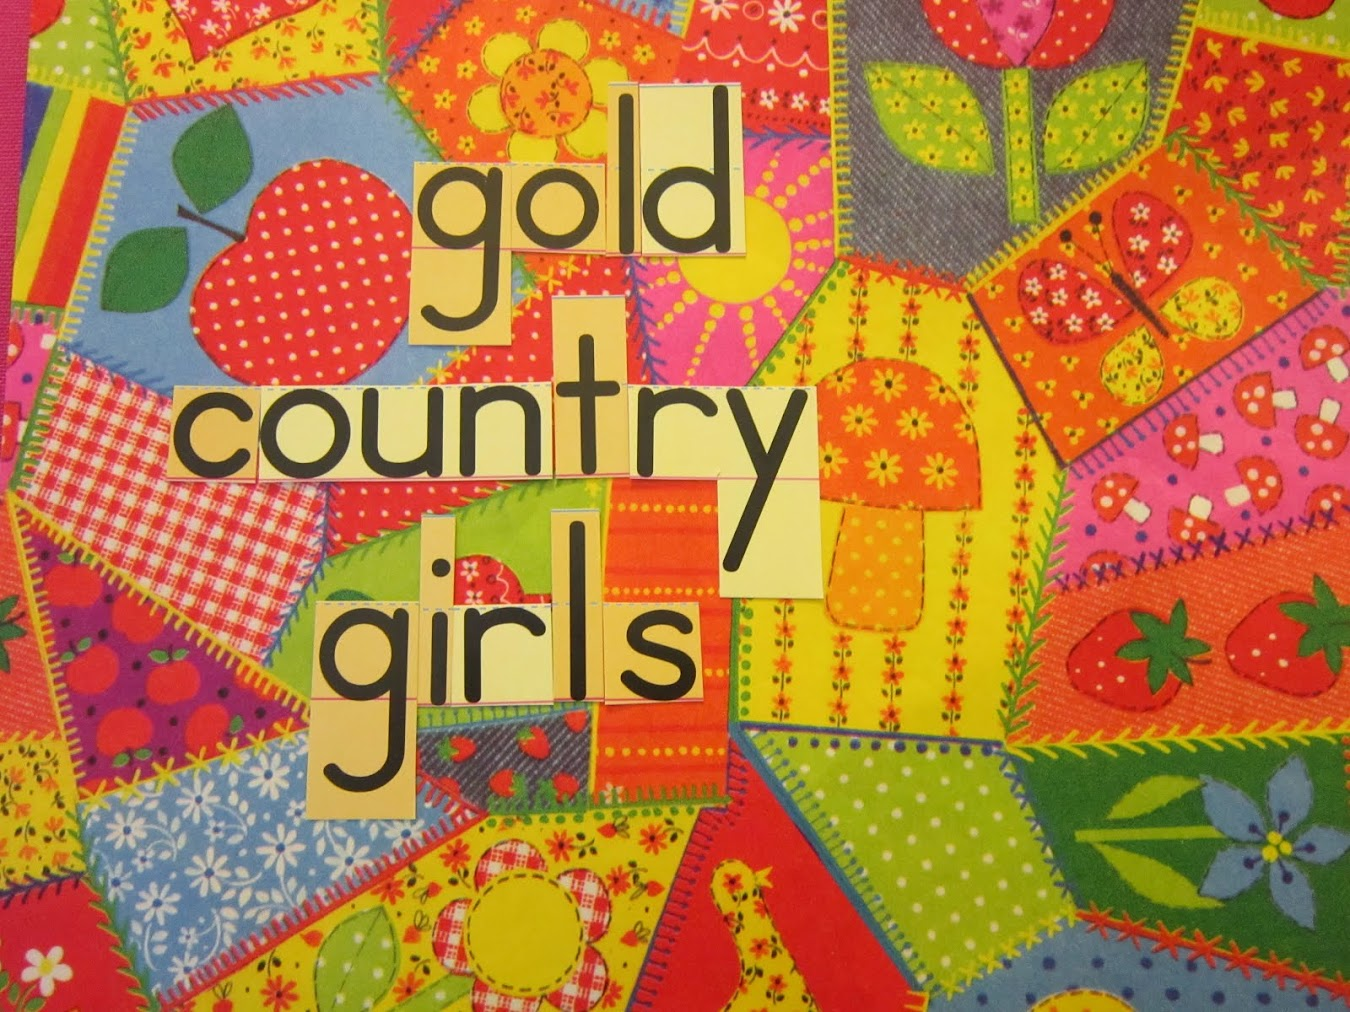 gold country girls